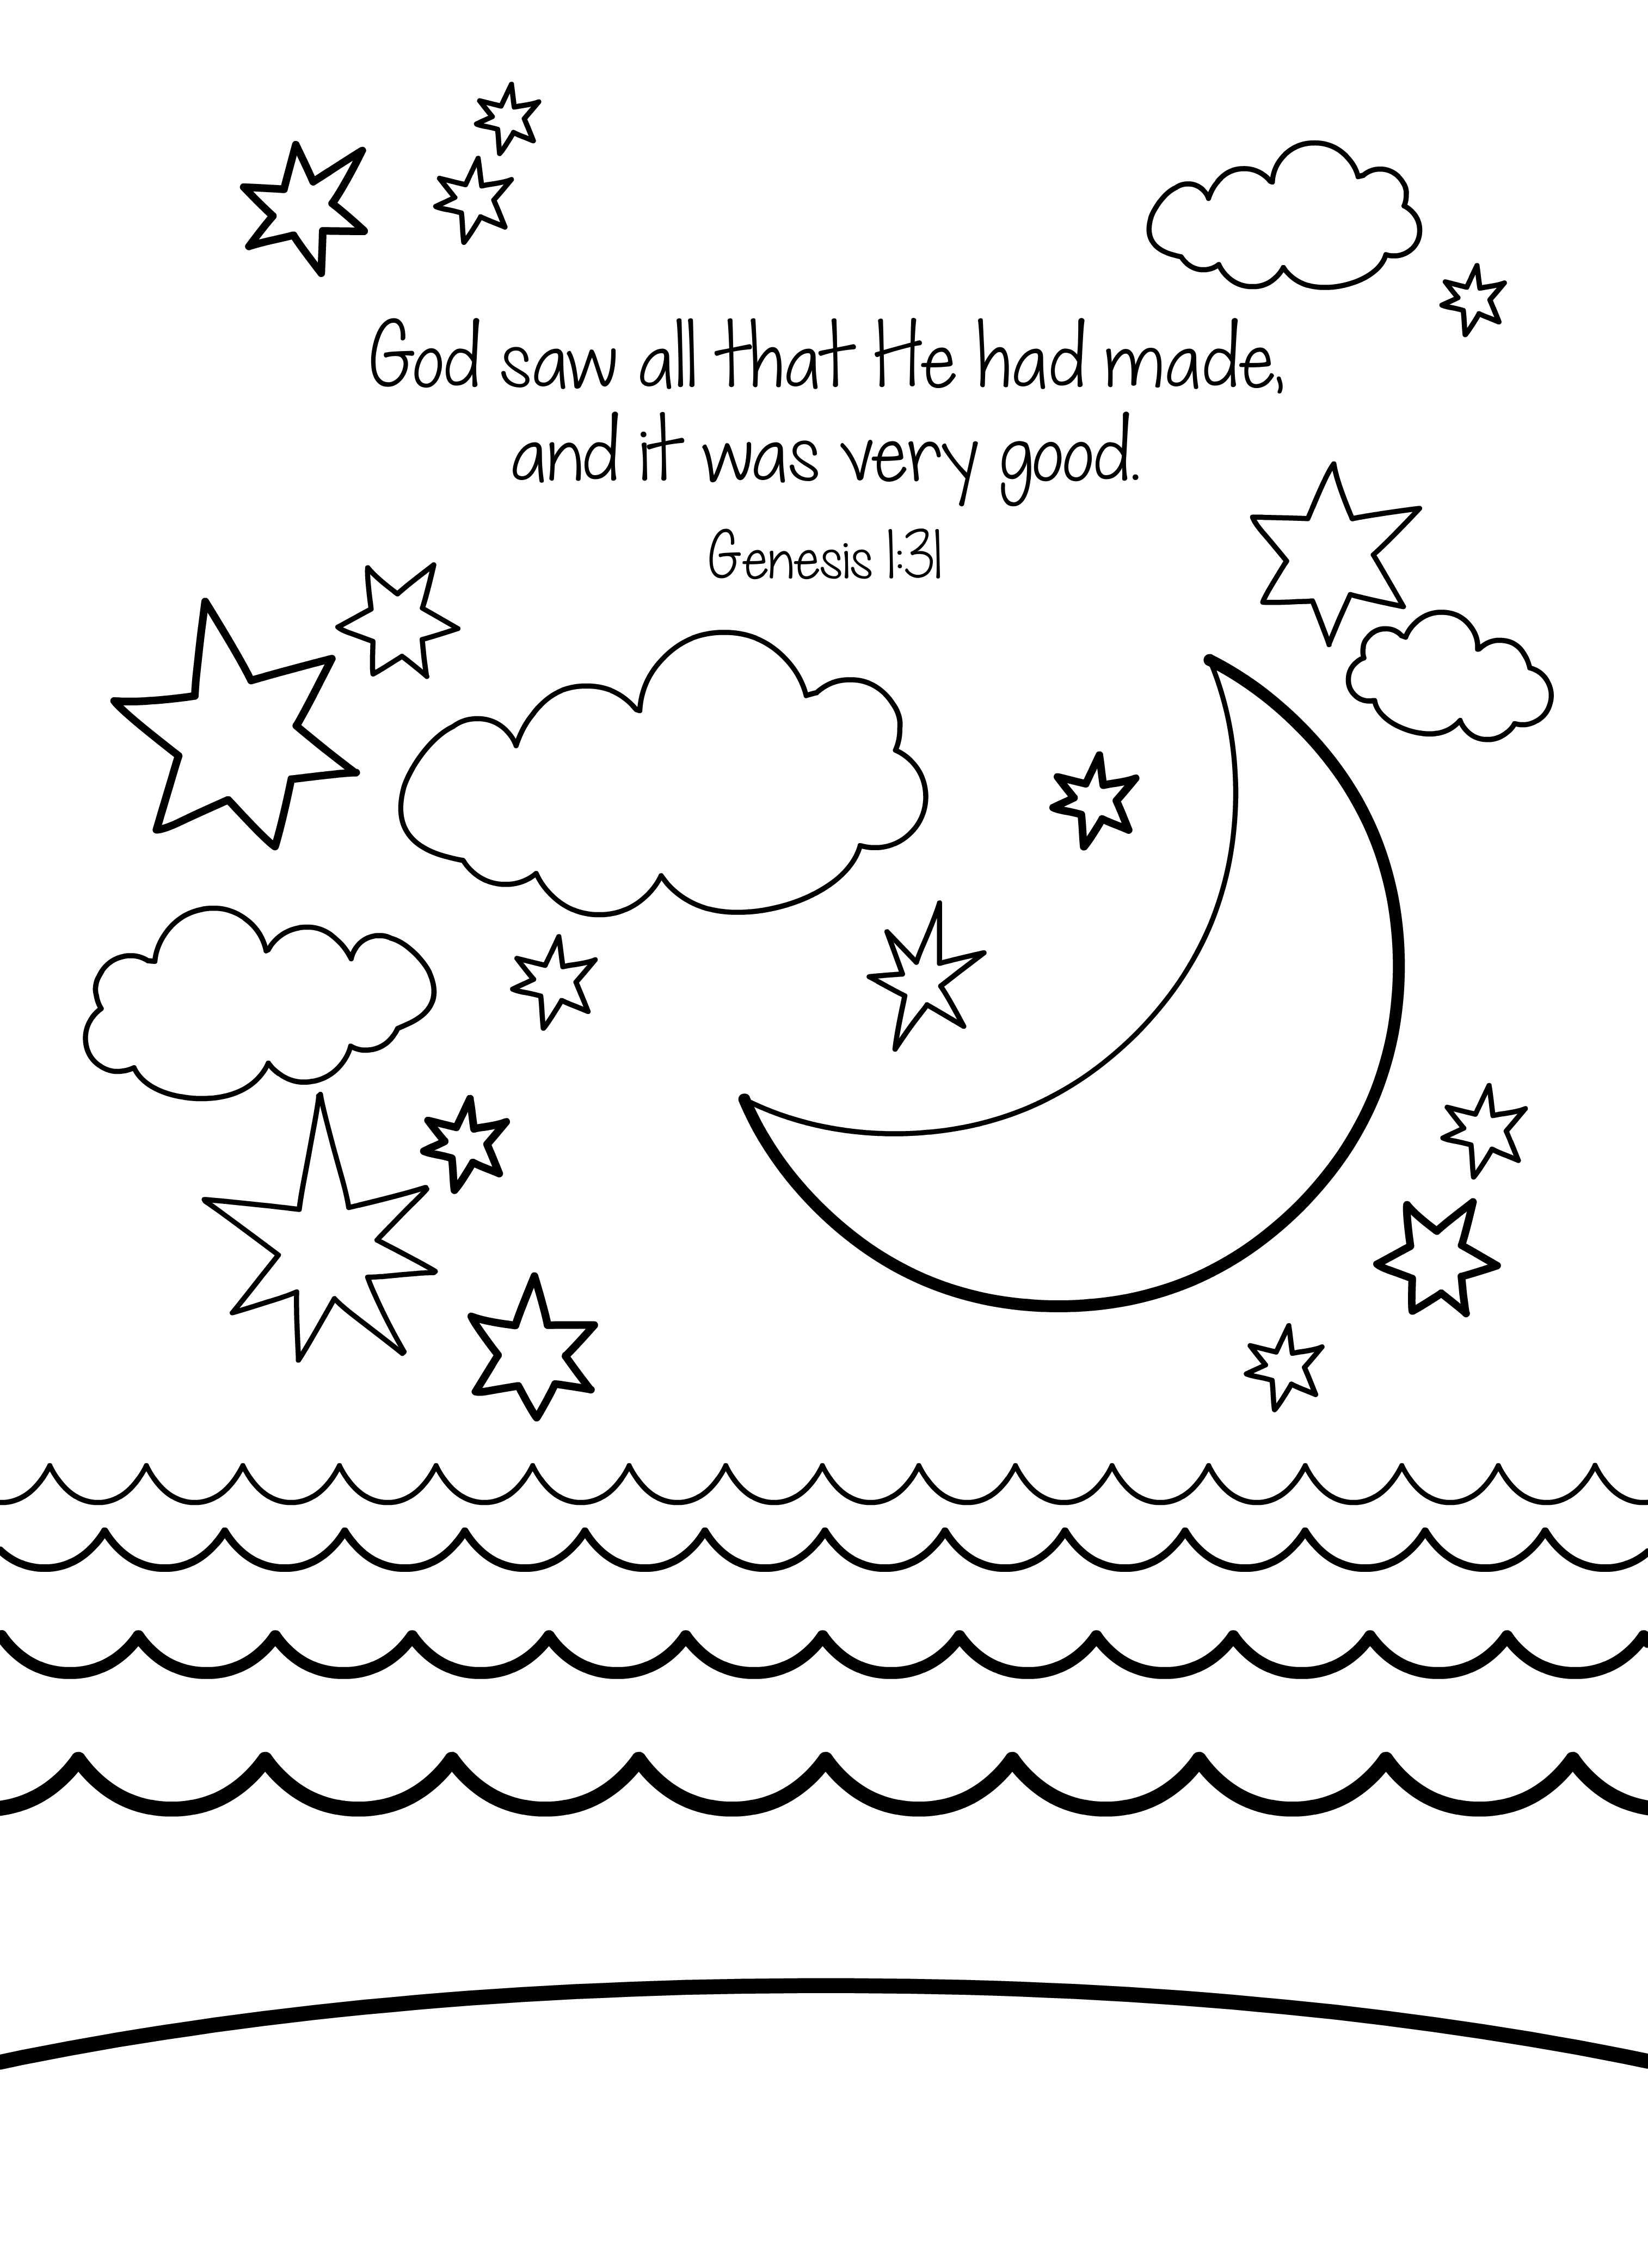 9 Pics Of Bible Verse Genesis 1 Coloring Pages